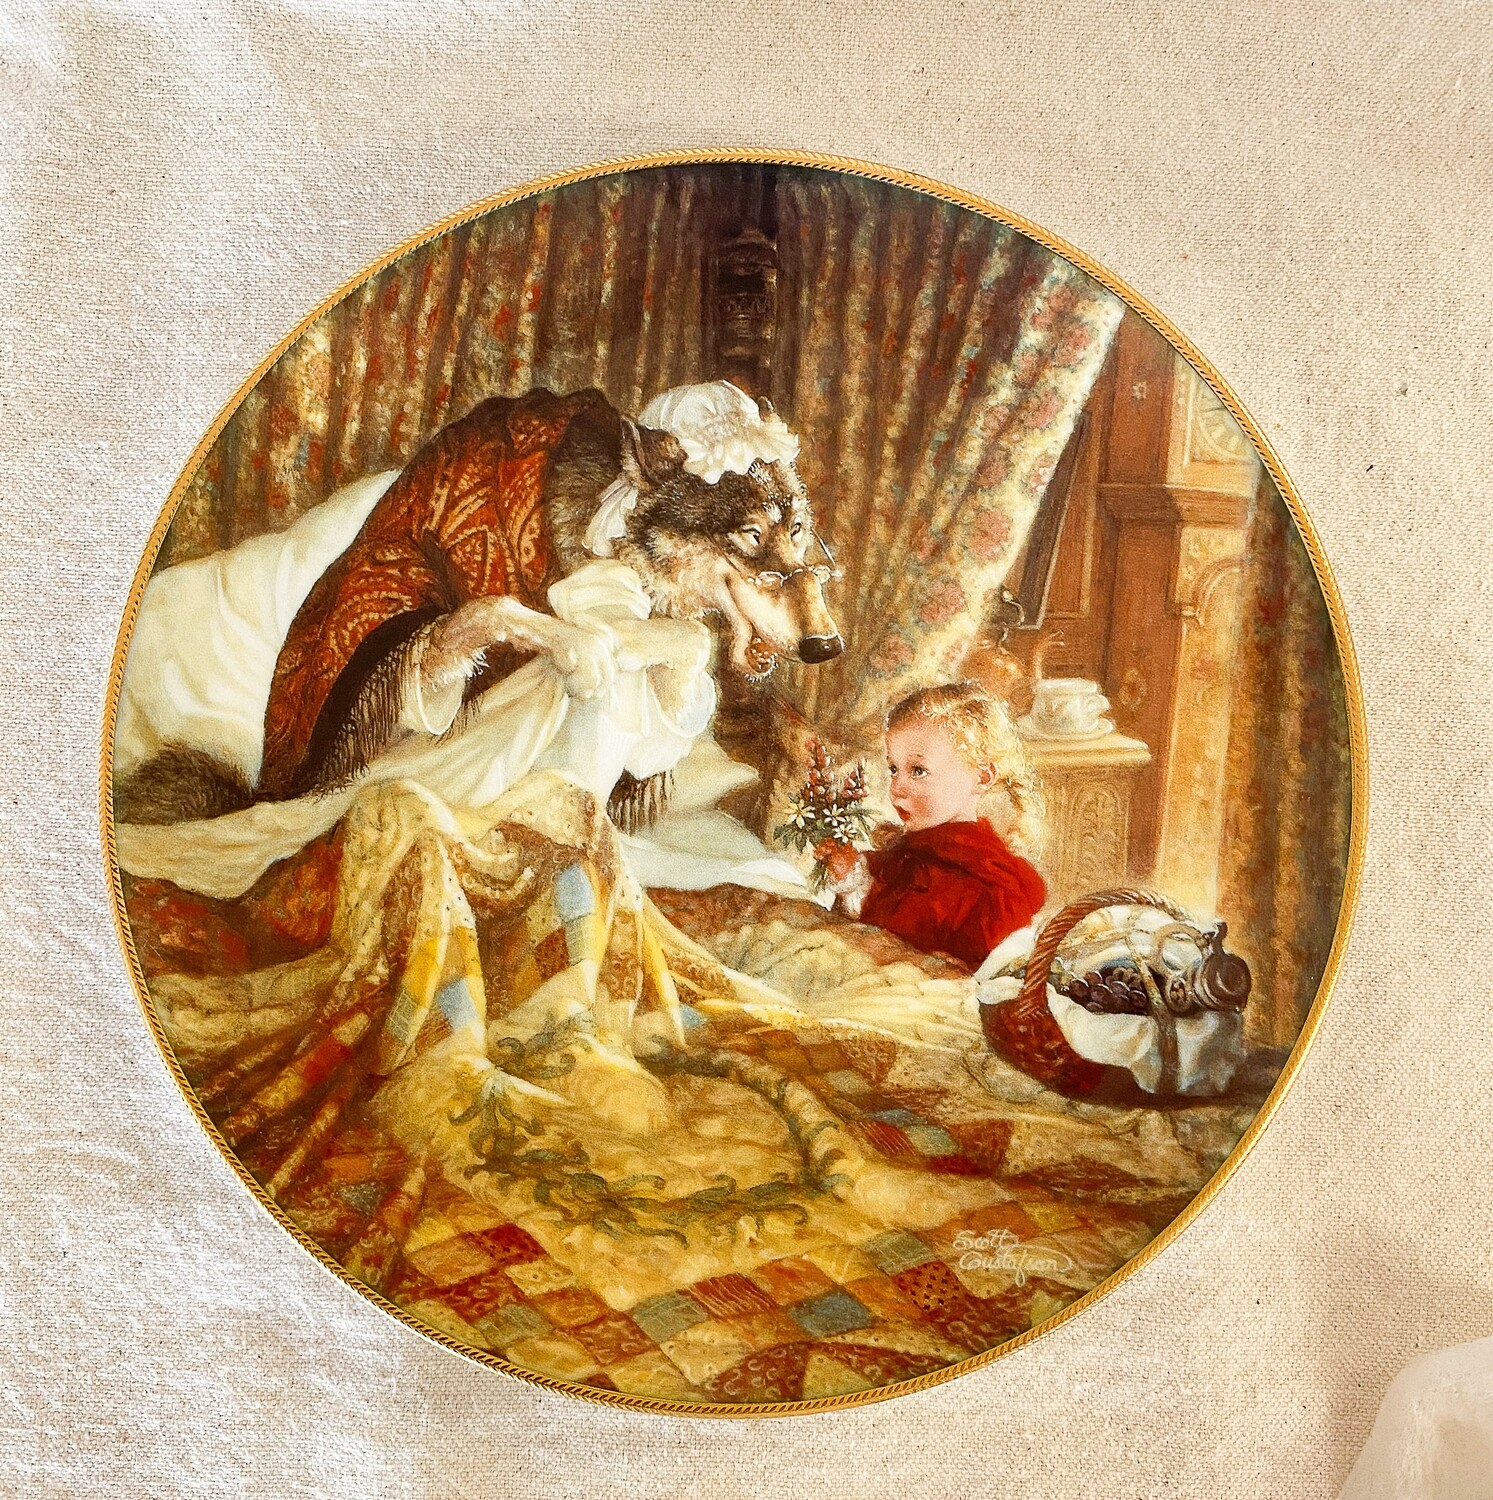 Knowles Scott Gustafson Porcelain Plate - Little Red Riding Hood